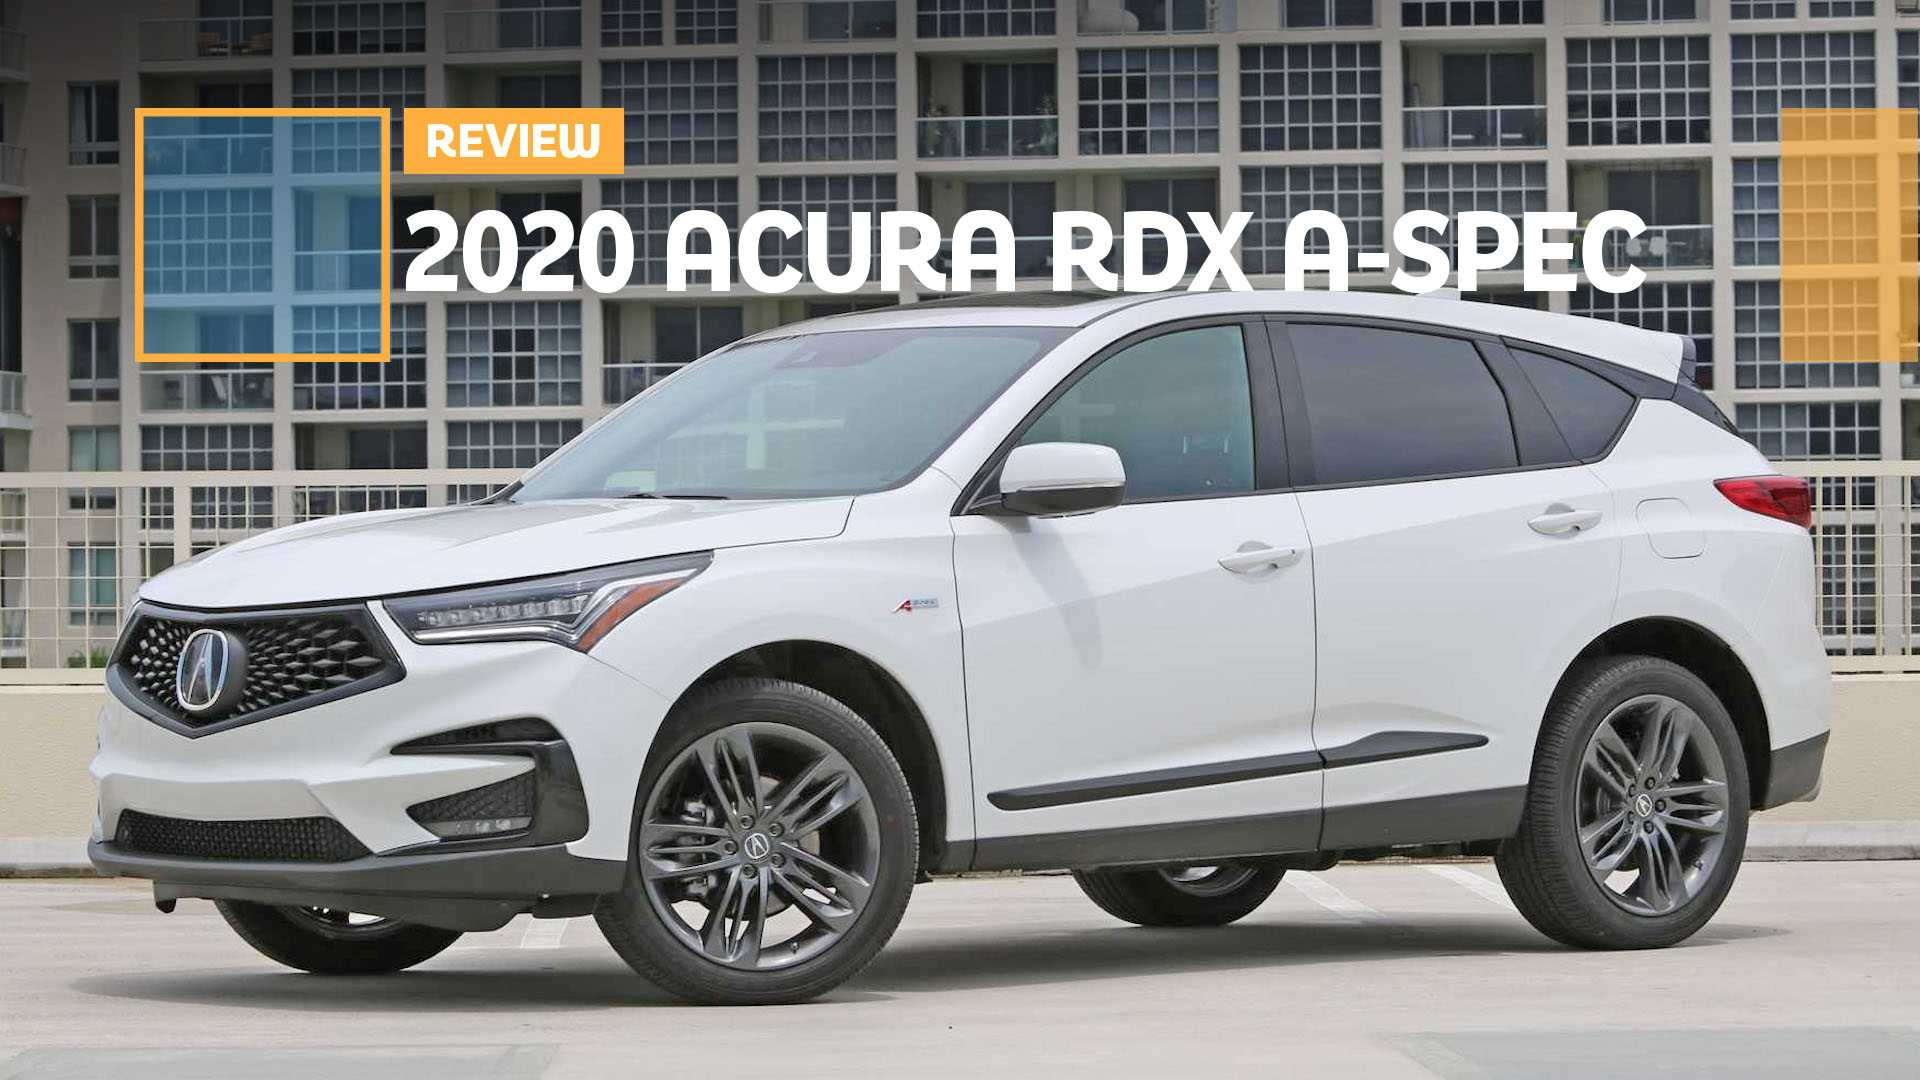 2020 Acura Rdx Review.2020 Acura Rdx A Spec Review The A Spec Team